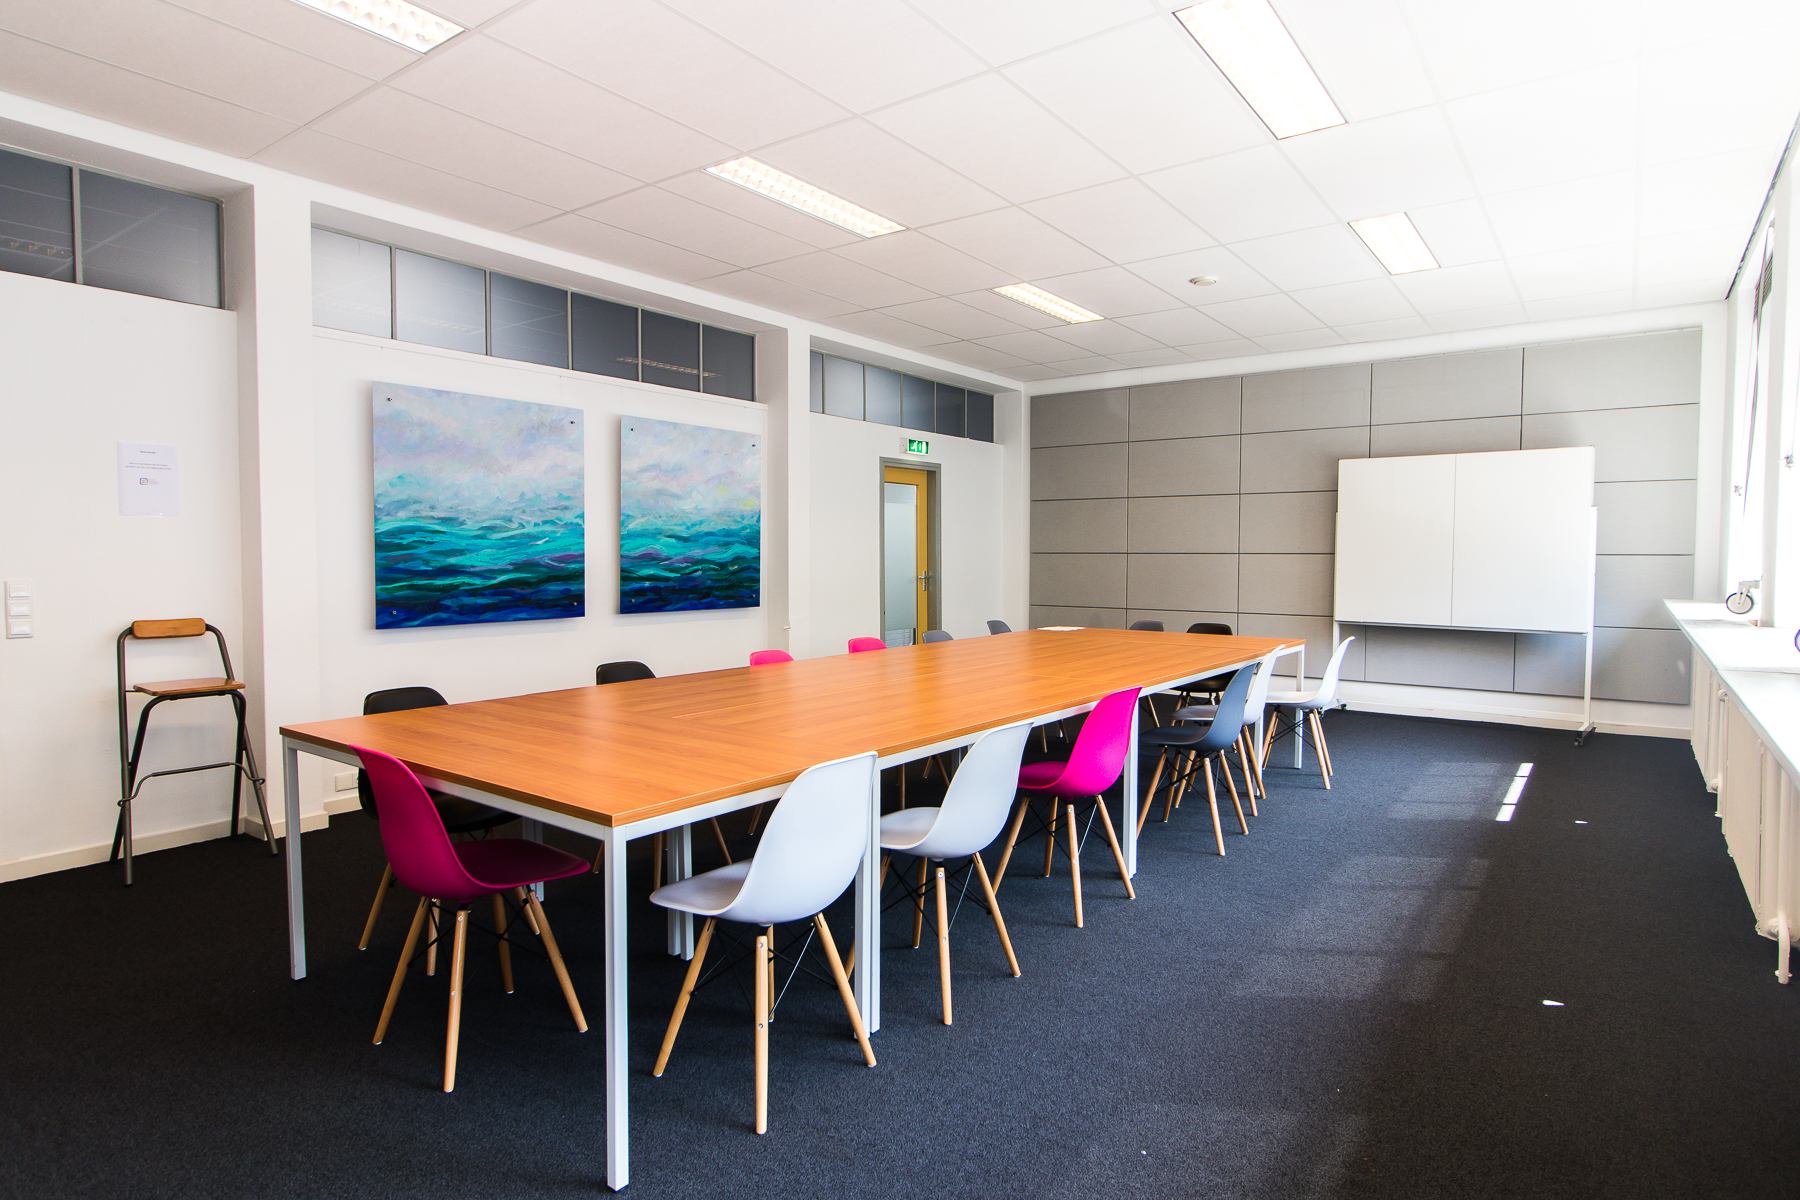 Multiple office spaces present for different group sizes